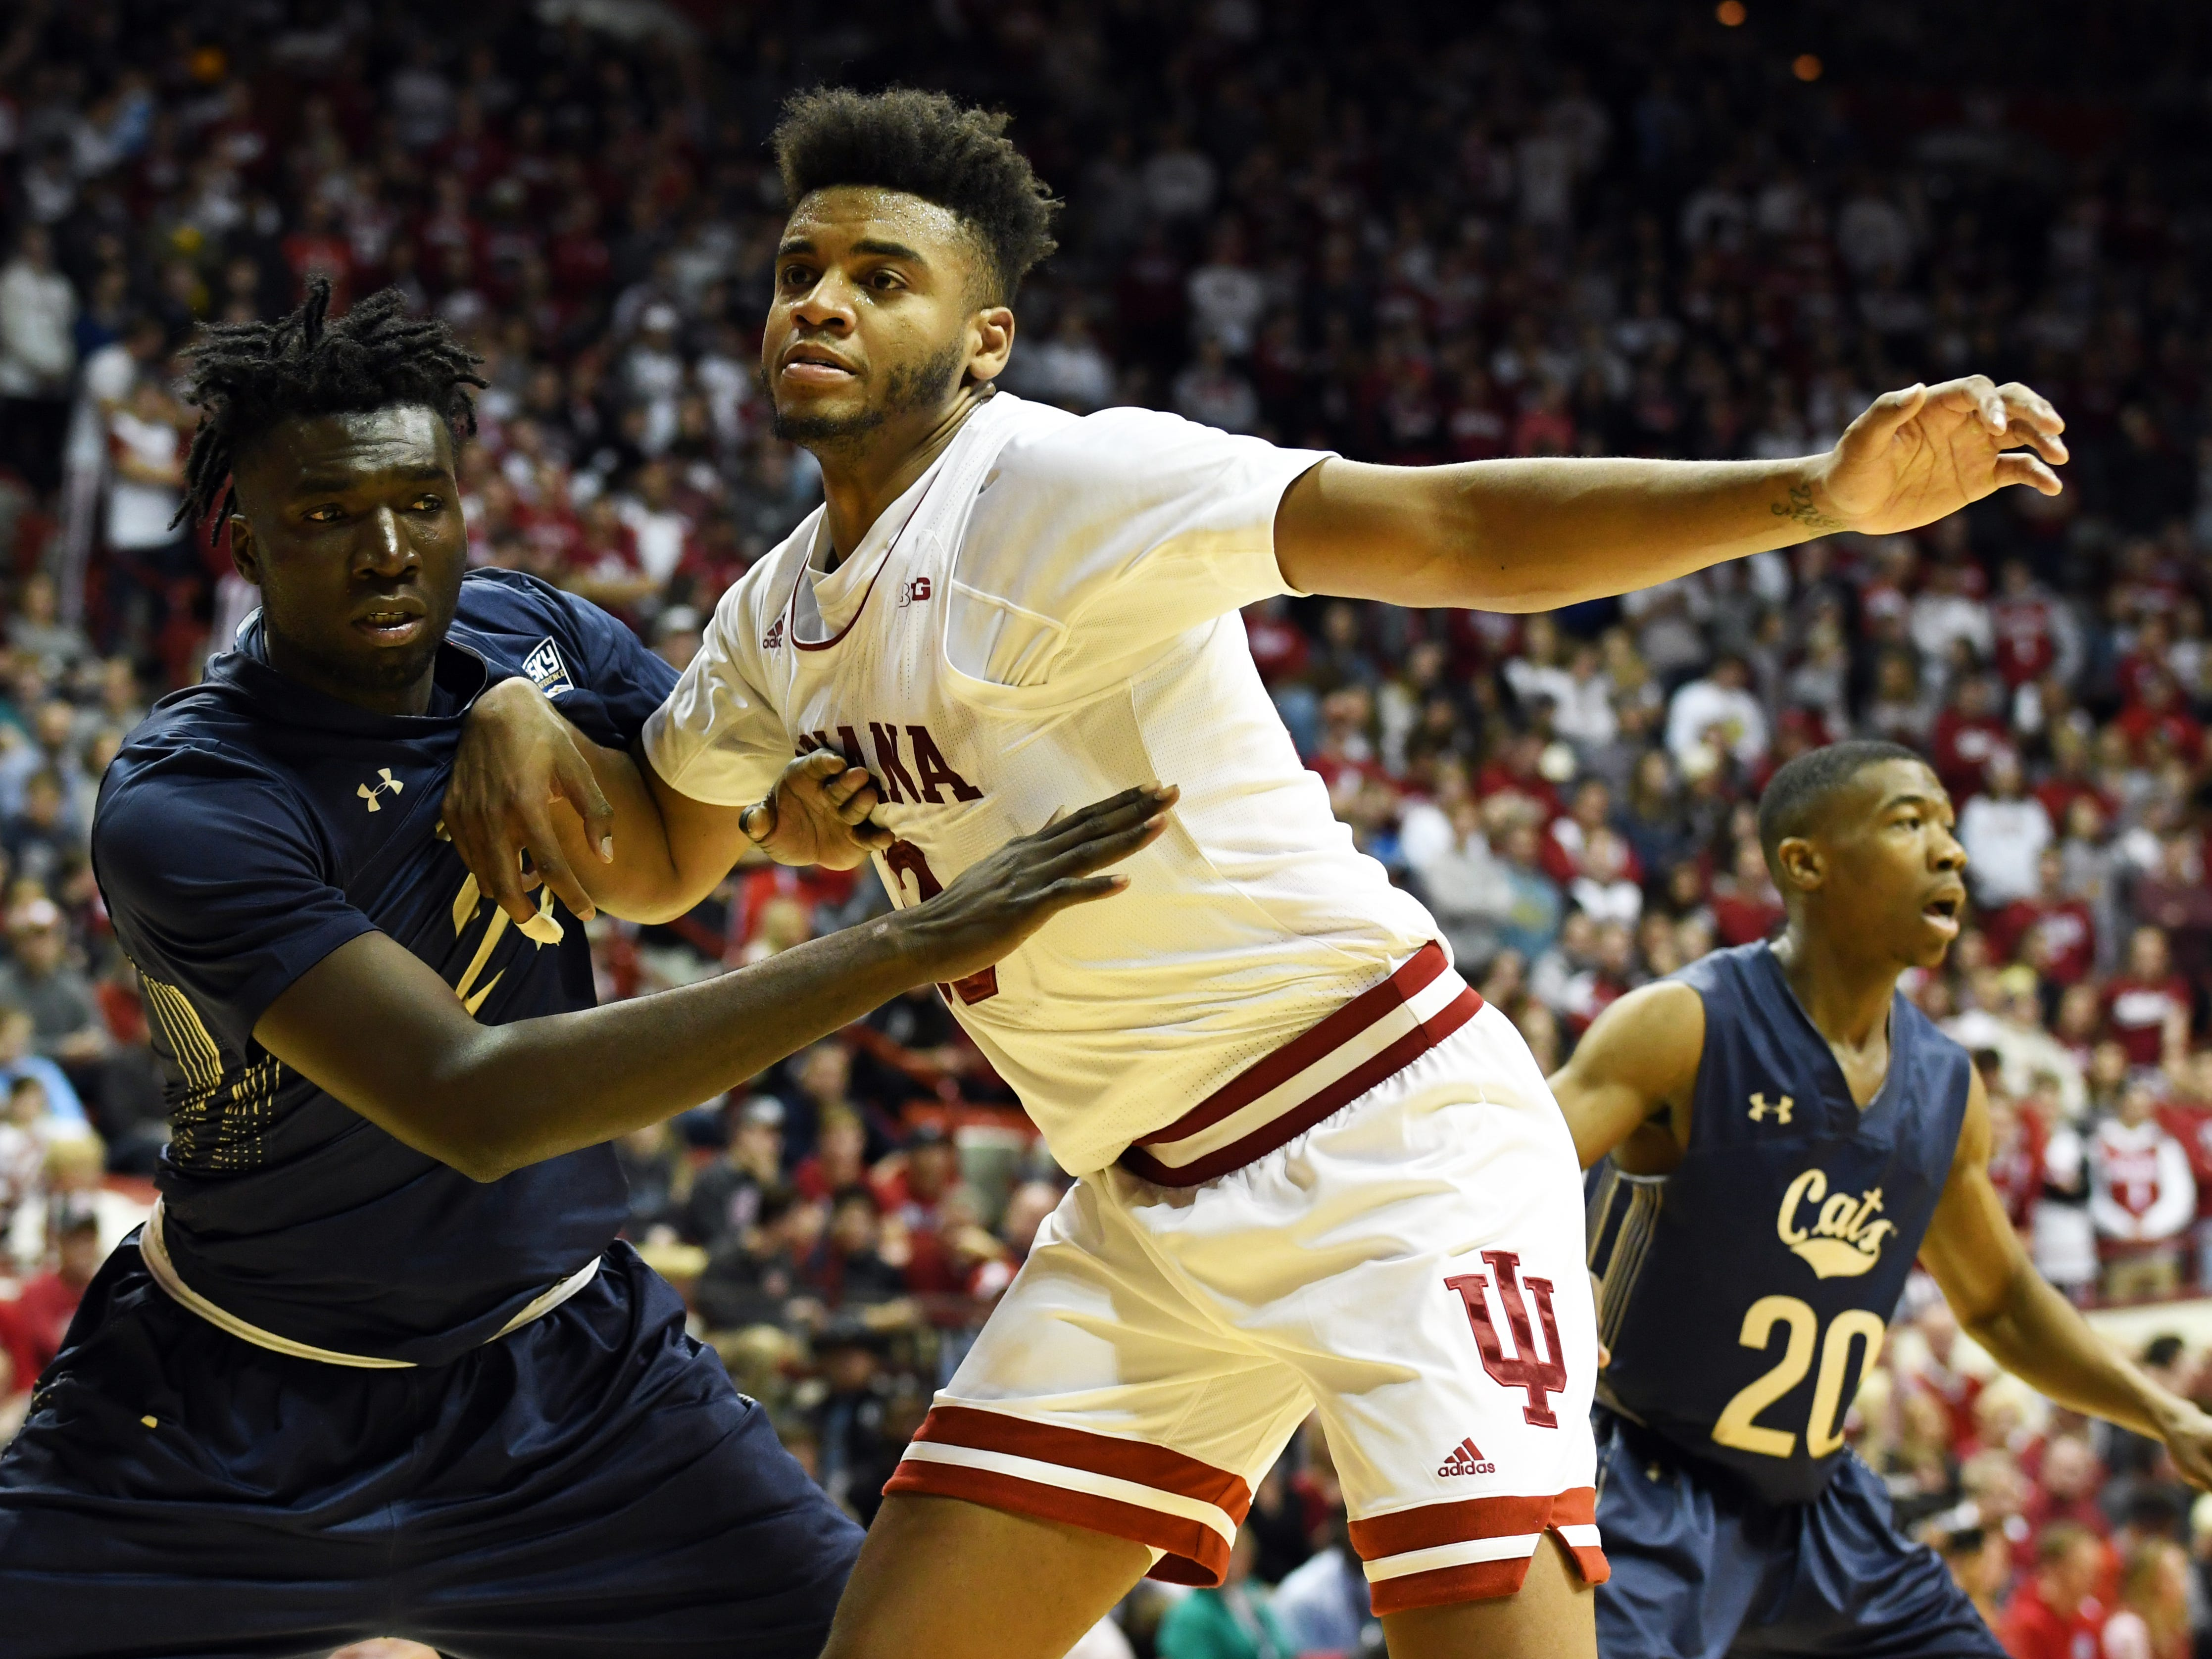 Indiana Hoosiers forward Juwan Morgan (13) looks to receive an inbound pass during the game against Montana State at Simon Skjodt Assembly Hall in Bloomington, Ind., on Friday, Nov. 9, 2018.